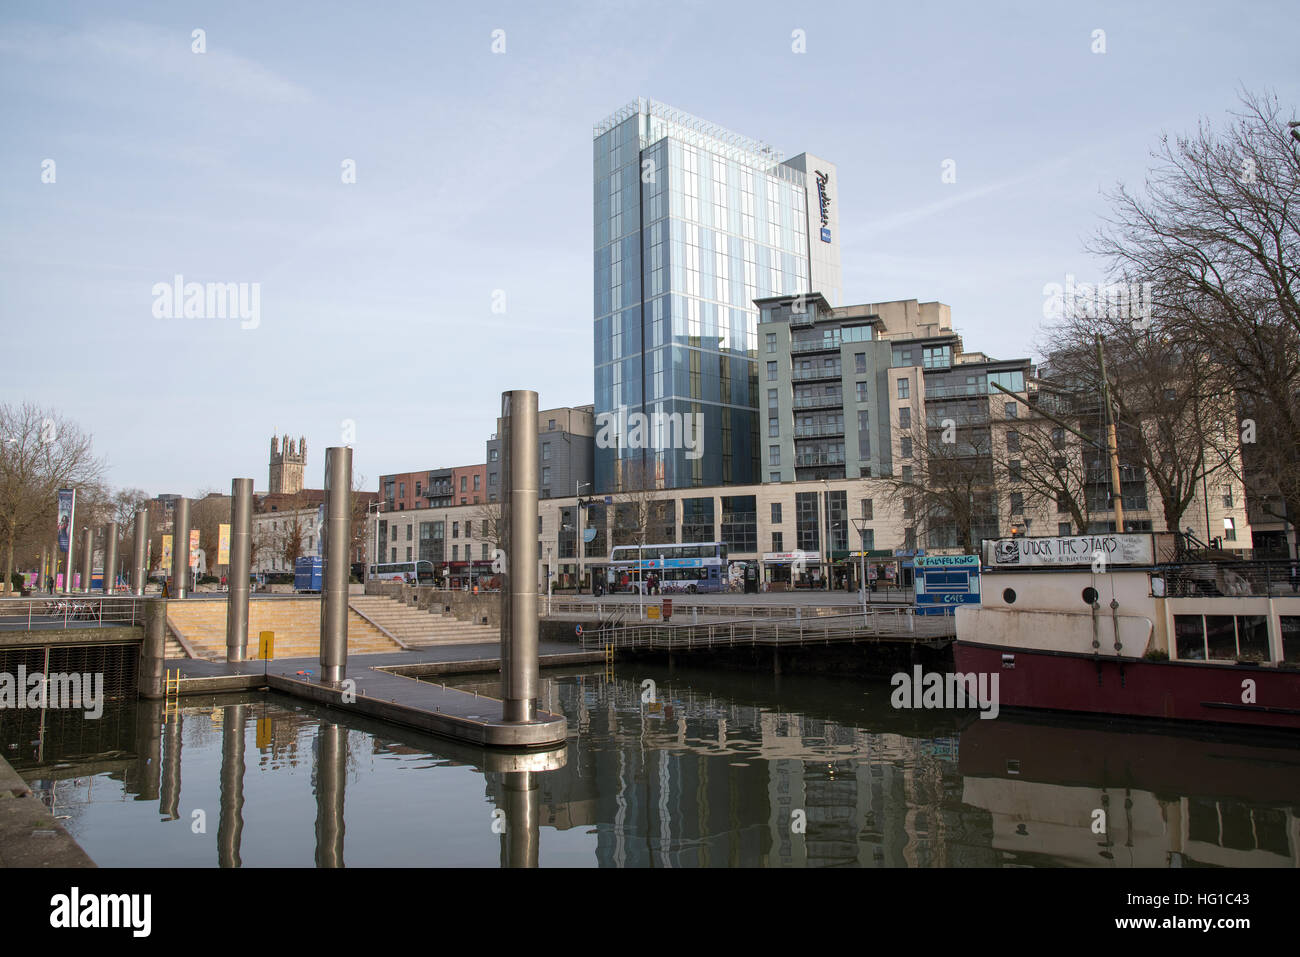 The Radisson Blu hotel on Broad Quay on the waterfront in Bristol England UK - Stock Image